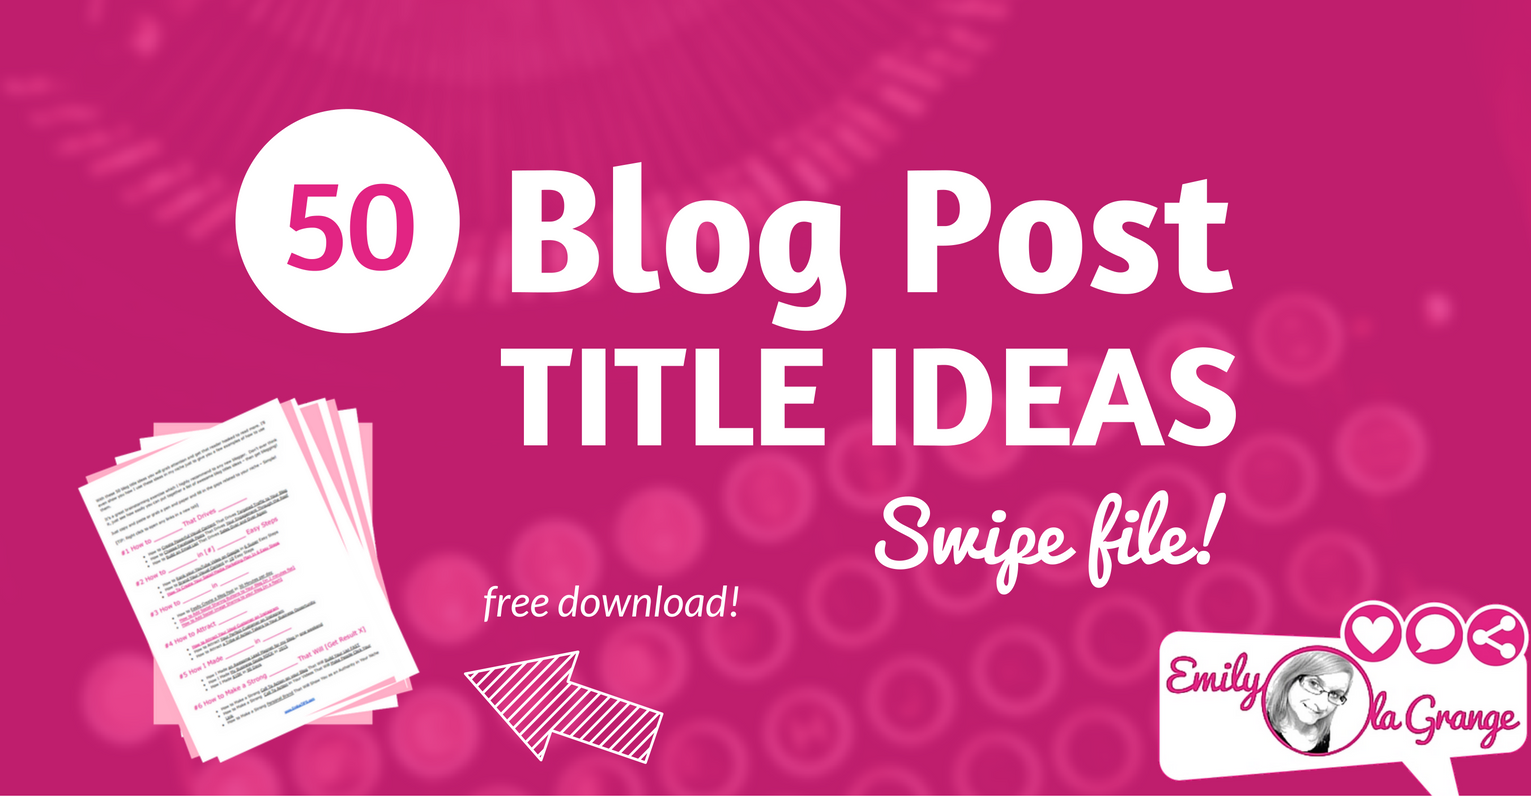 [FREE Swipe File] 50 Blog Post Title Ideas